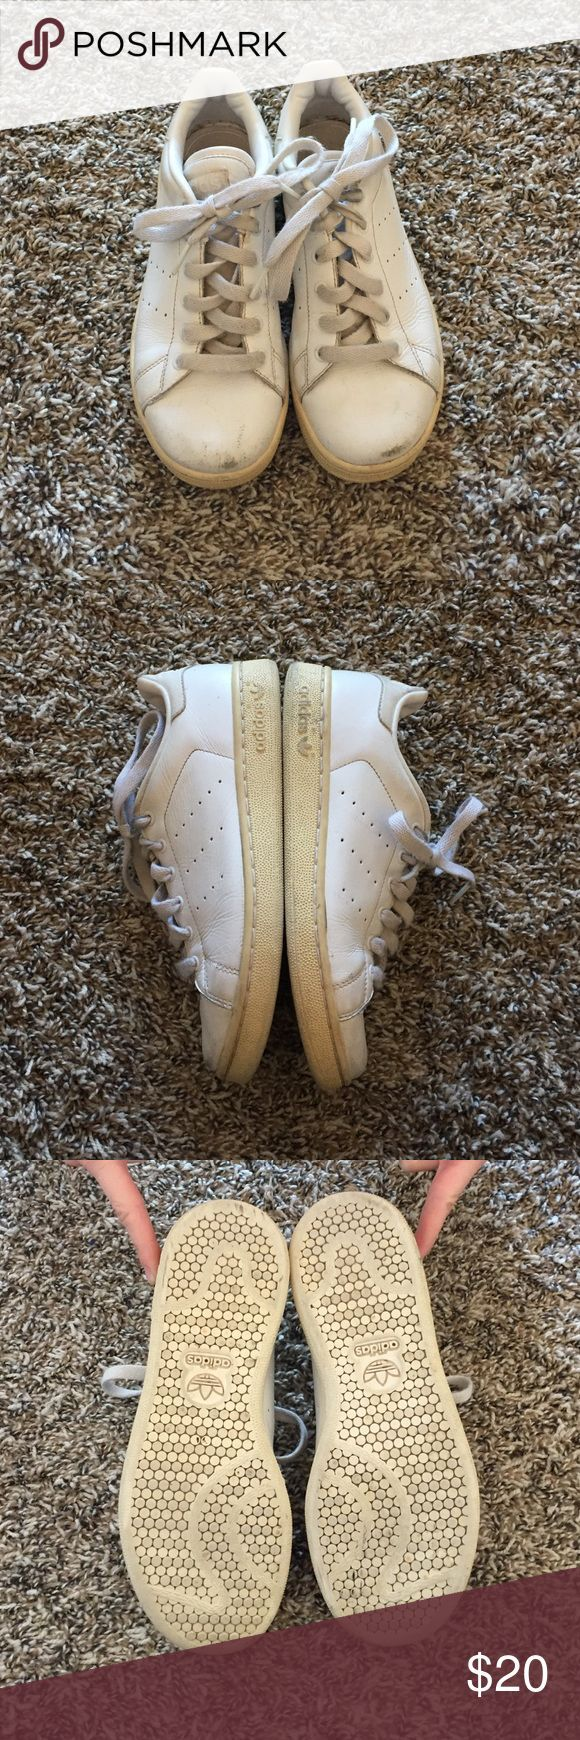 Nice Adidas Shoes Stan Smith Adidas Tennis Shoes These Stan Smith style Adidas are a kids size 2.5...